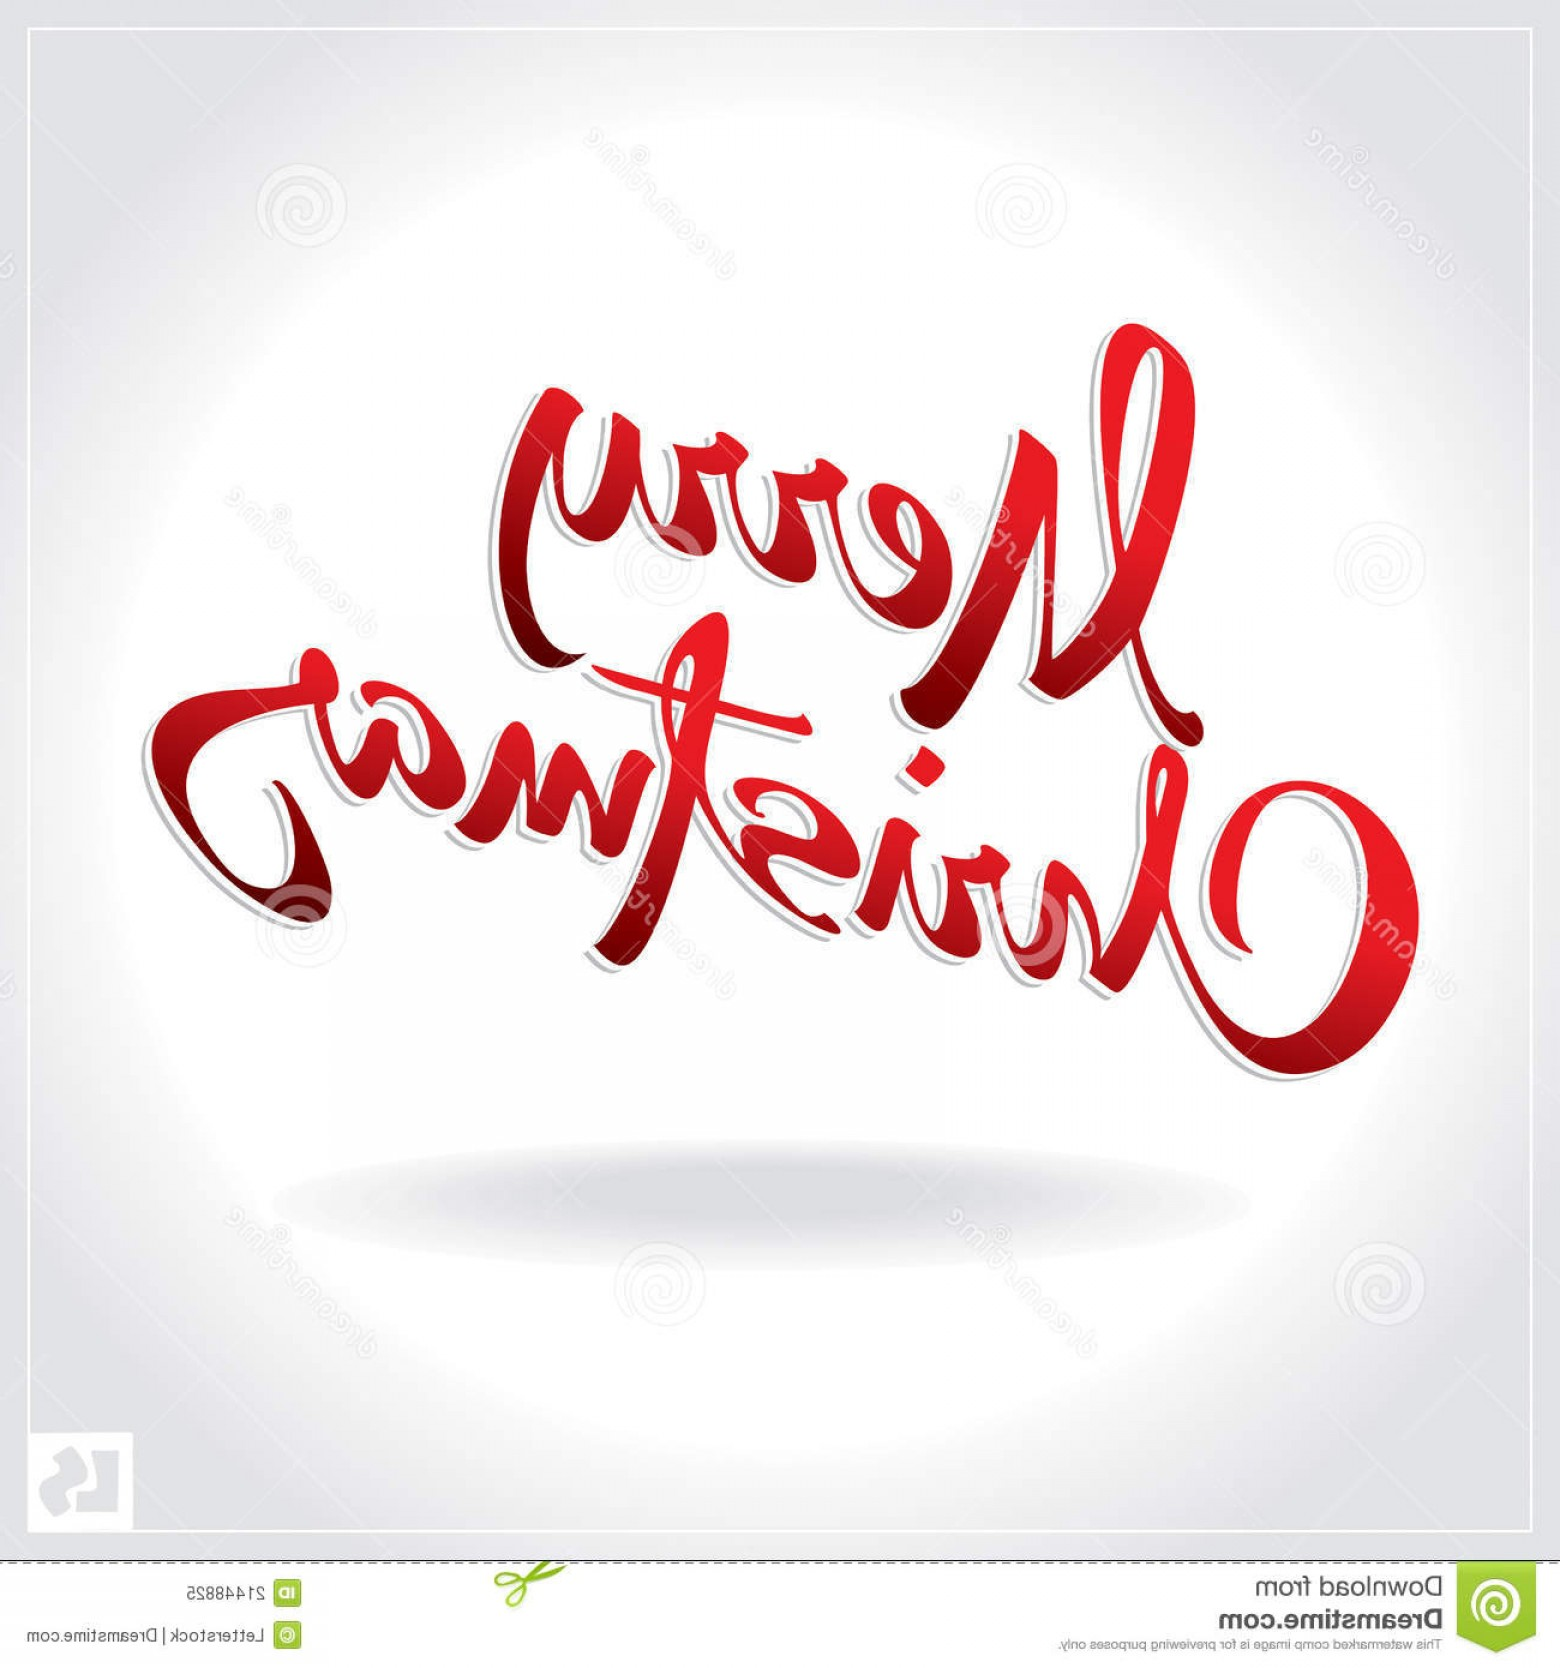 Merry Christmas Vector Graphic: Royalty Free Stock Photo Merry Christmas Hand Lettering Vector Image